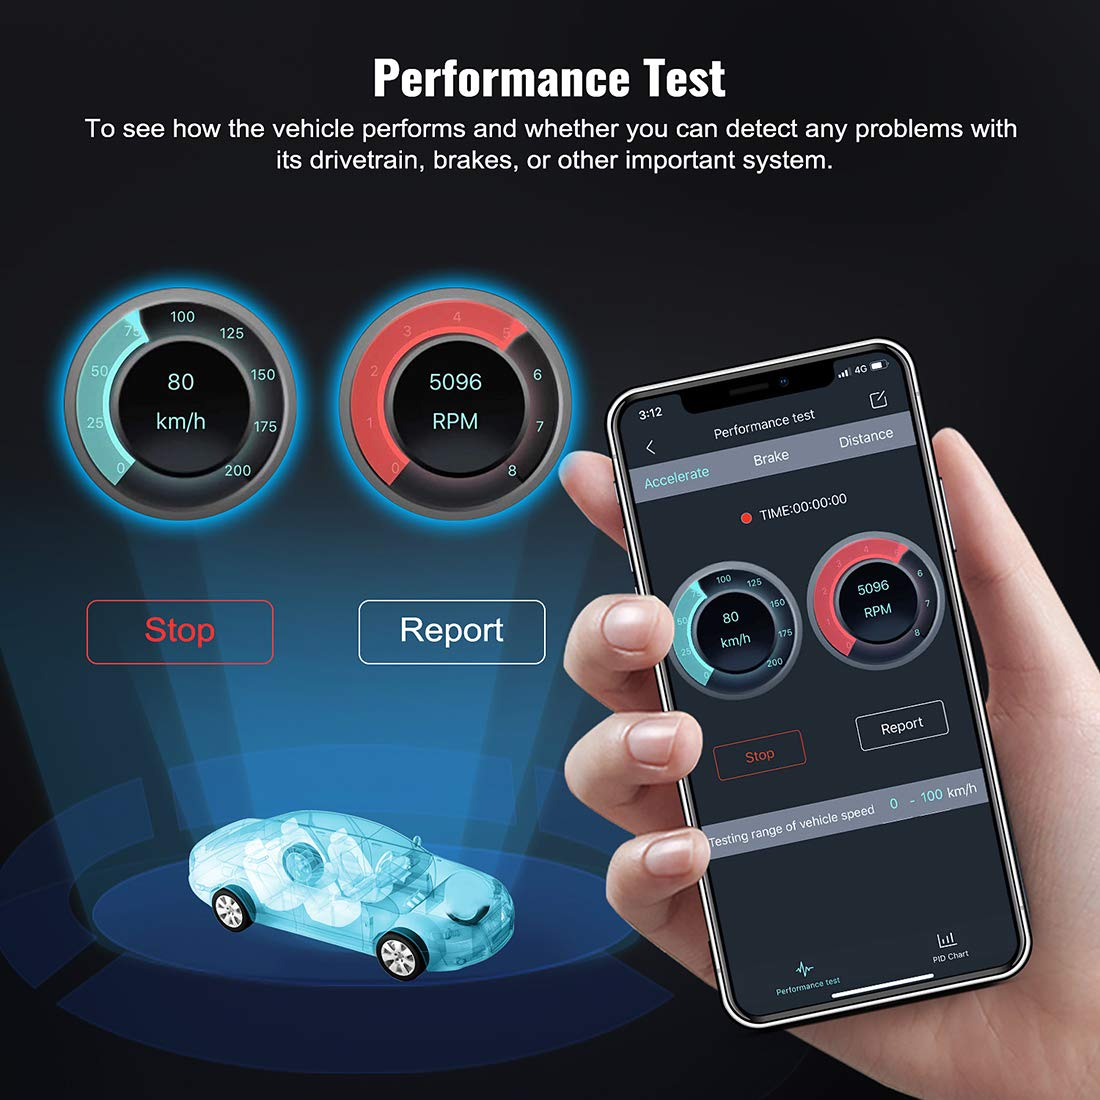 AUTOPHIX 3210 Bluetooth OBD2 Enhanced Car Diagnostic Scanner for iPhone, iPad & Android, Fault Code Reader Plus Battery Tester Exclusive App for Quality-Newest Generation by AUTOPHIX (Image #6)